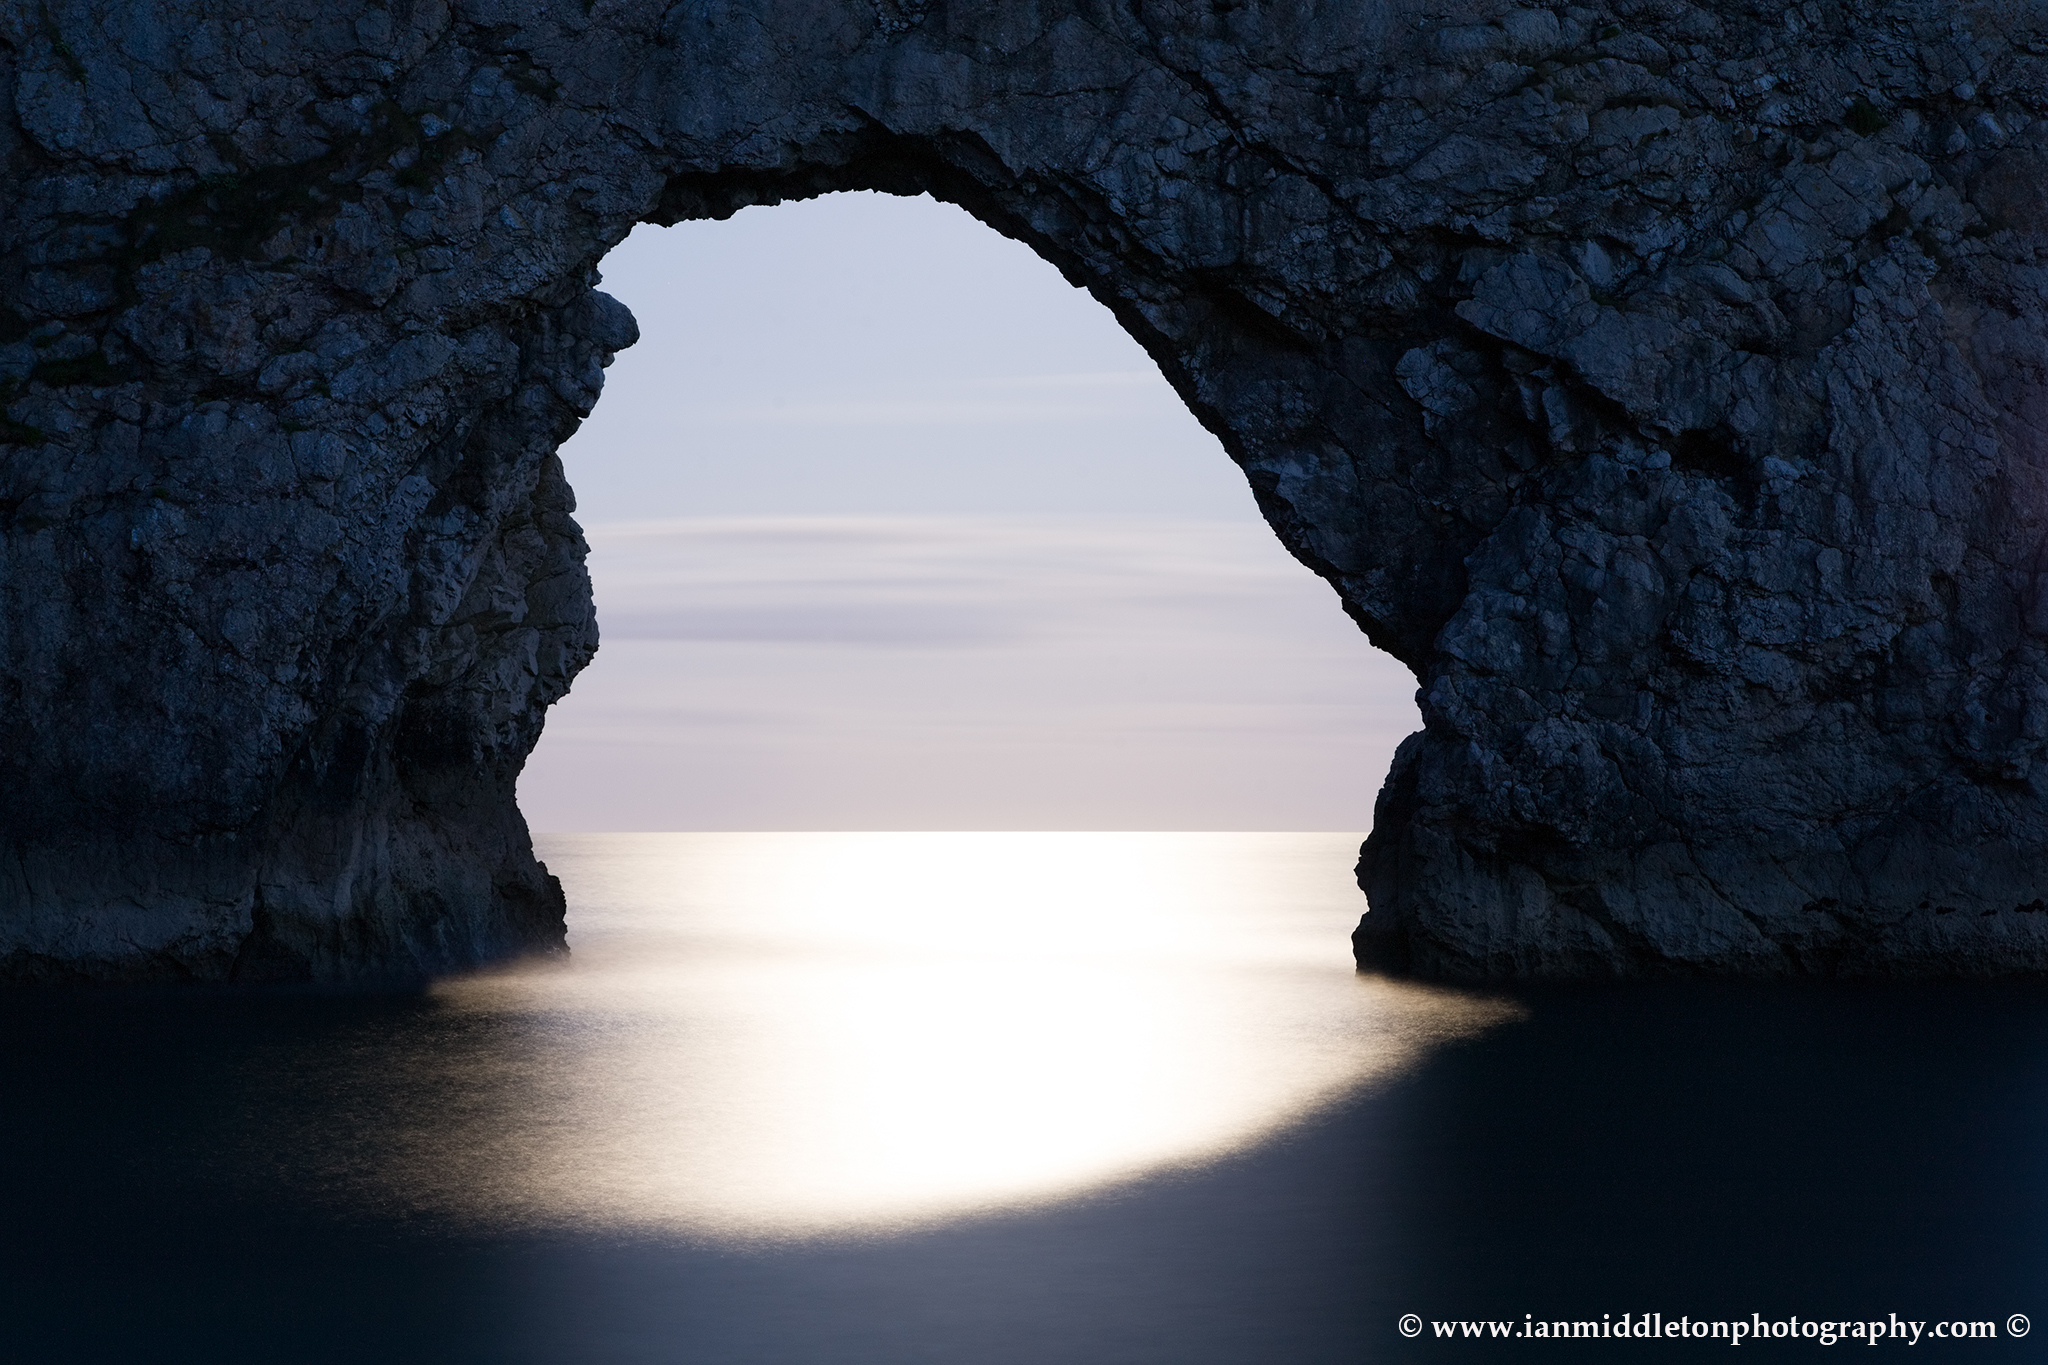 Durdle Door in the moonlight, Dorset, England. Captured late evening as the moonlight flooded through the rock's archway. Durdle door is one of the many stunning locations to visit on the Jurassic coast in southern England.